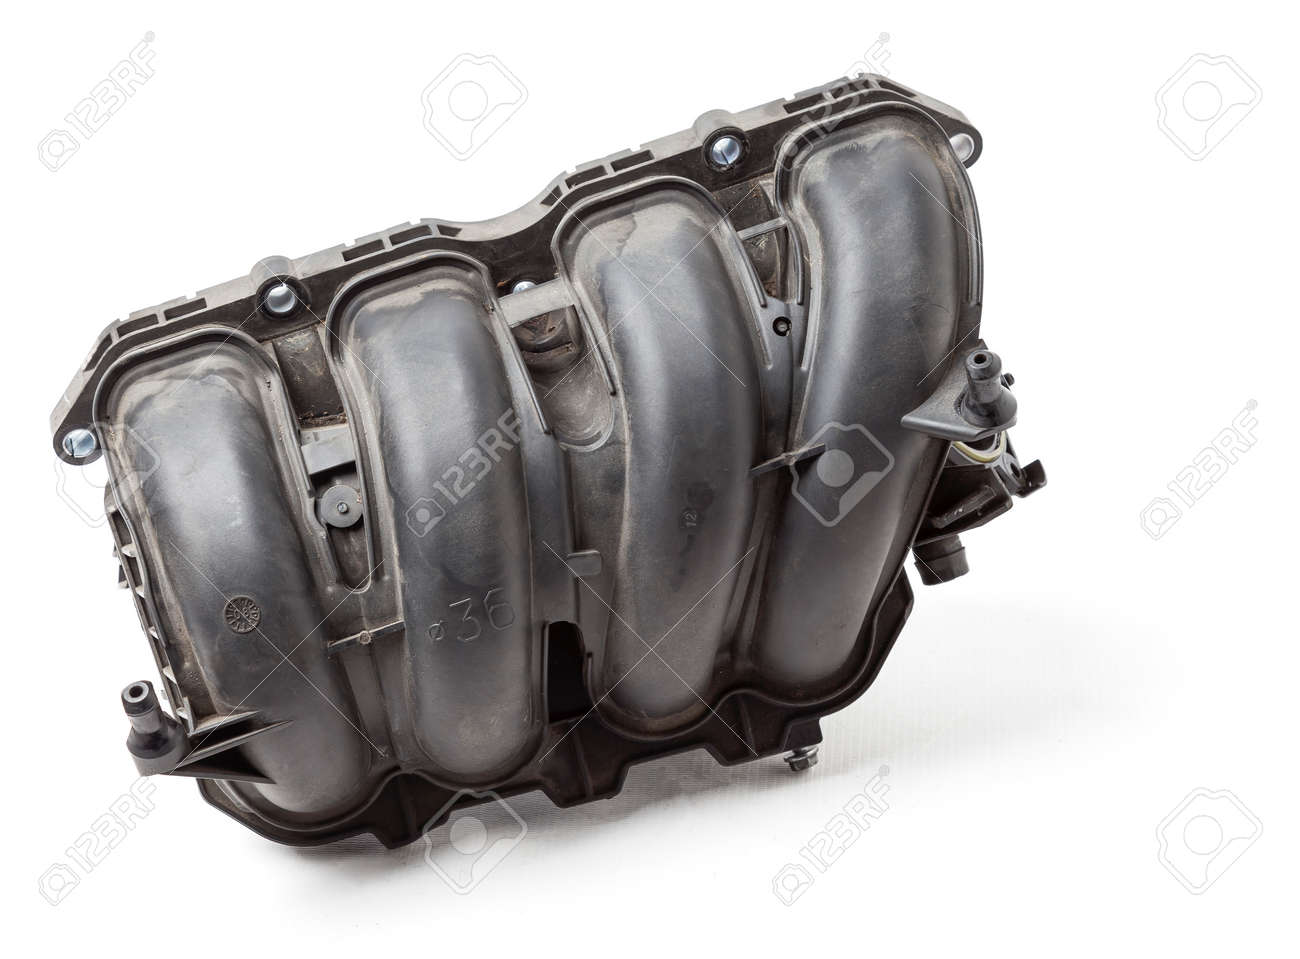 Intake manifold plastic housing with a system for adjusting the air flow to the engine. Repair and replacement of spare parts of vehicles in a car service. - 169051397